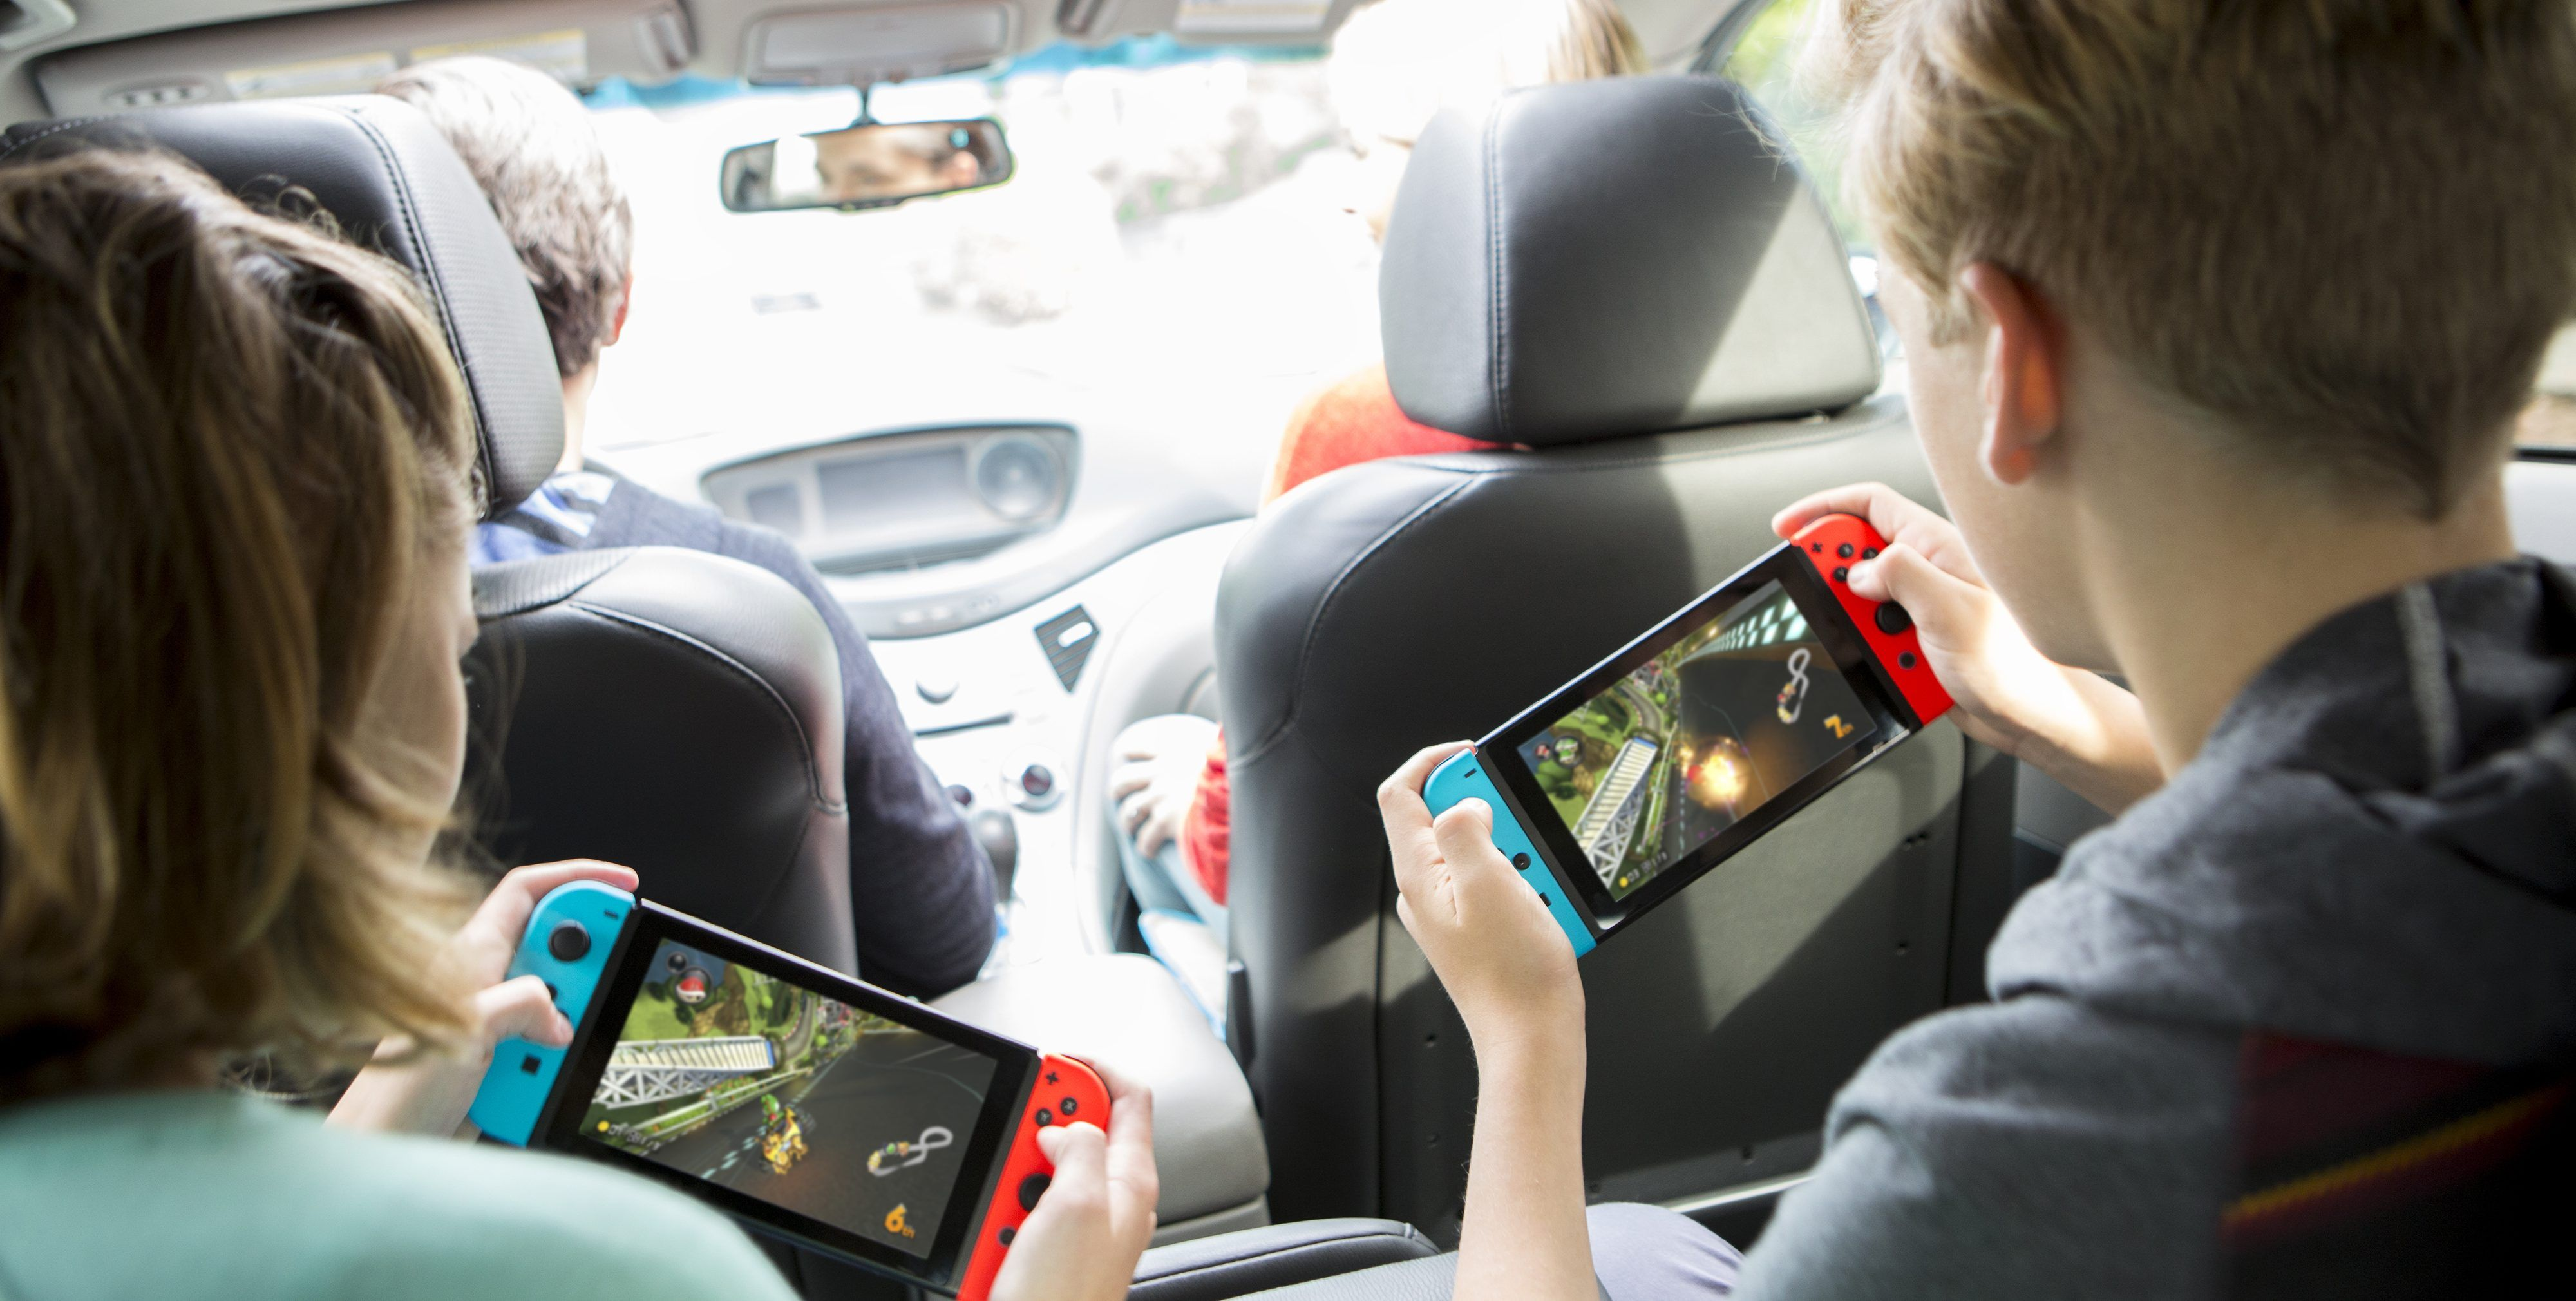 How To Share Digital Nintendo Switch Games With Friends